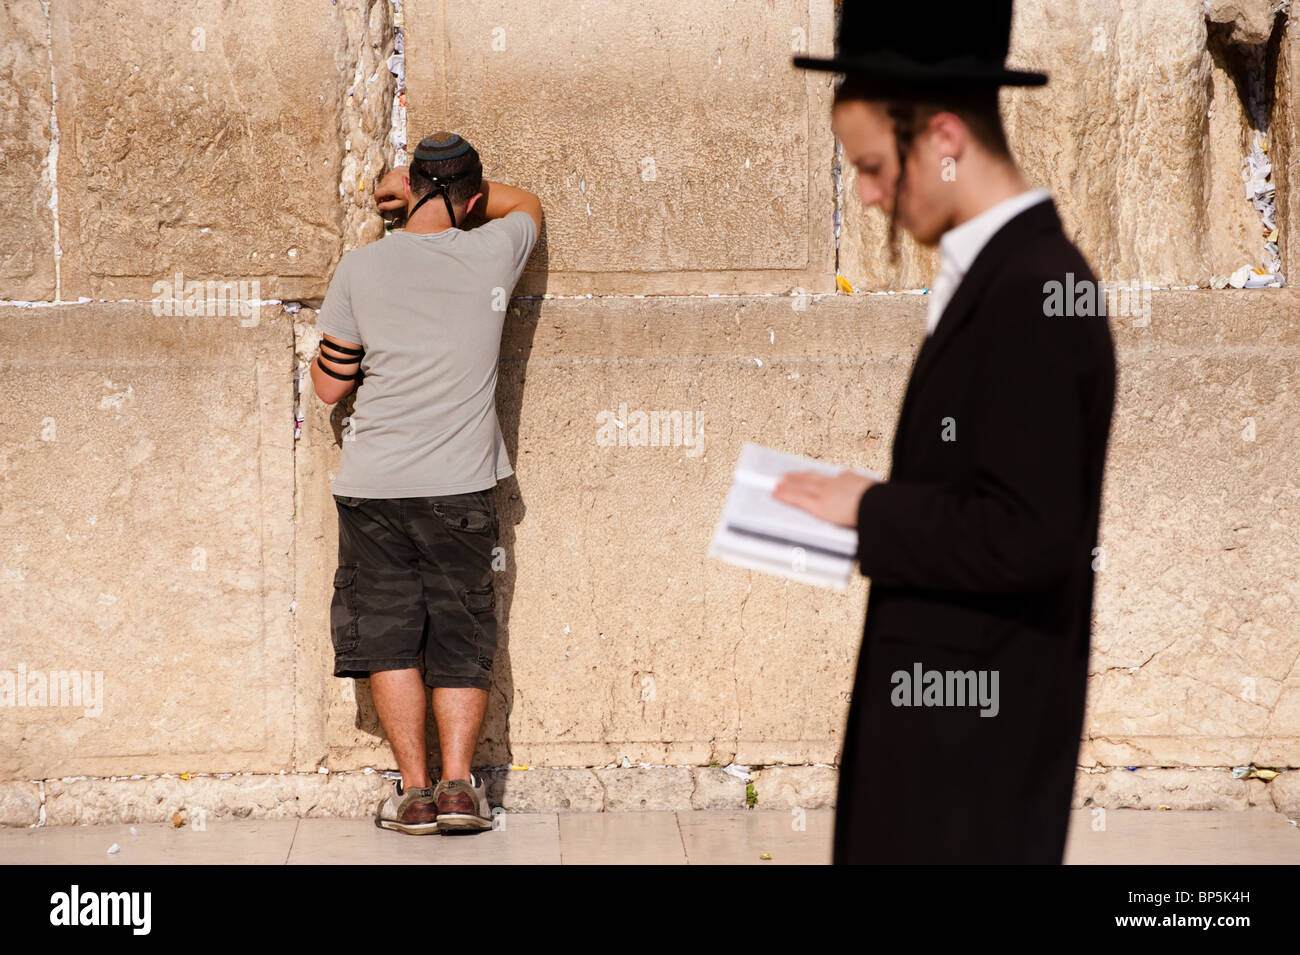 A Jewish young man prays at the Western Wall while an orthodox worshipper passes reading a prayer book. - Stock Image